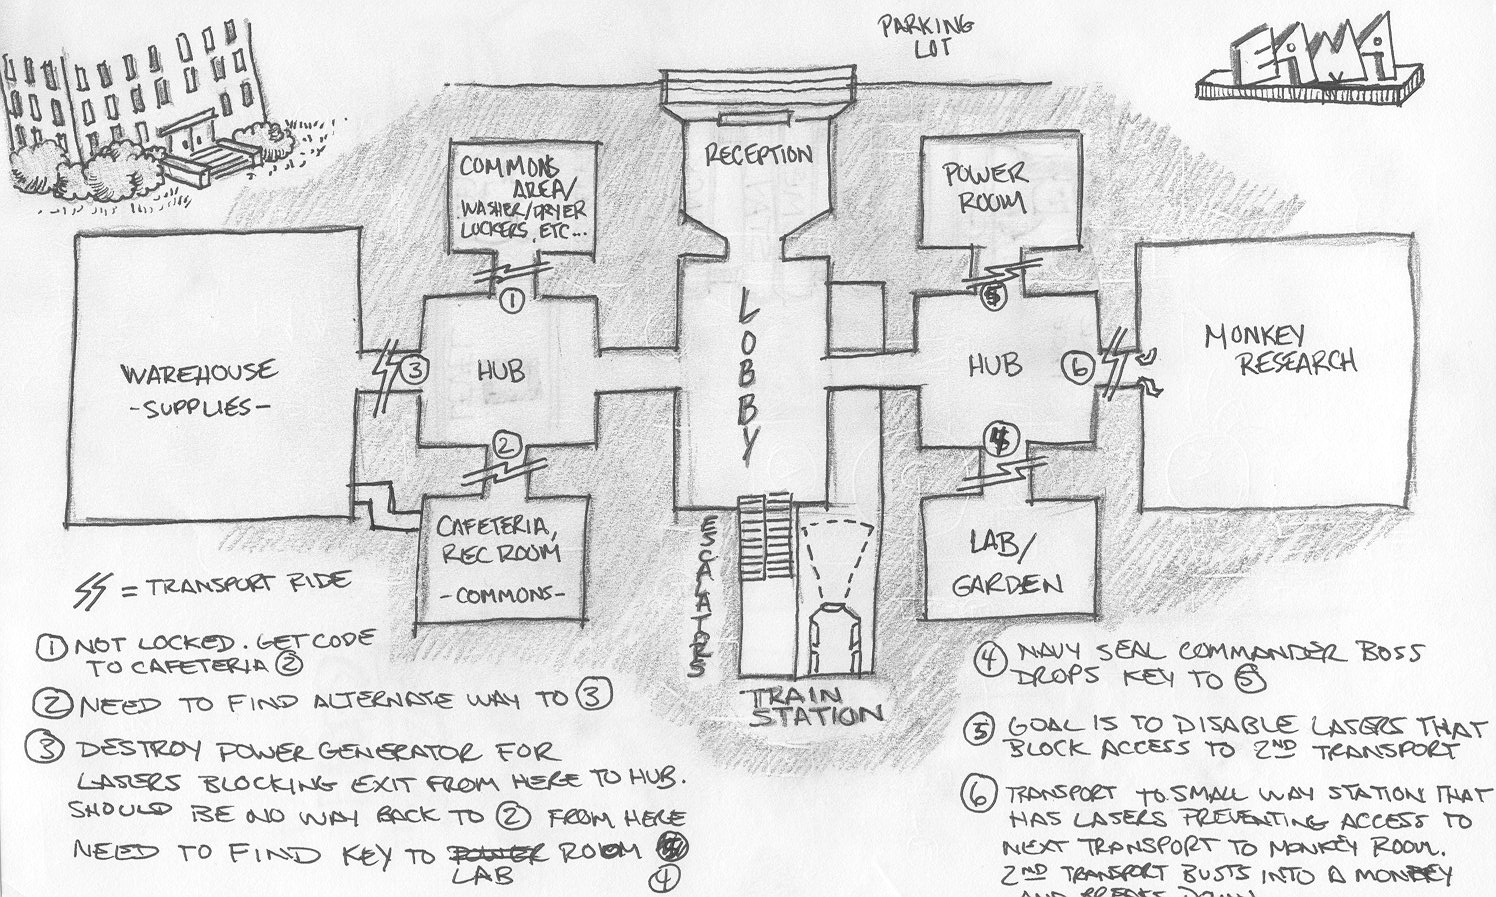 The research lab level, E4M4 sketch that I made.